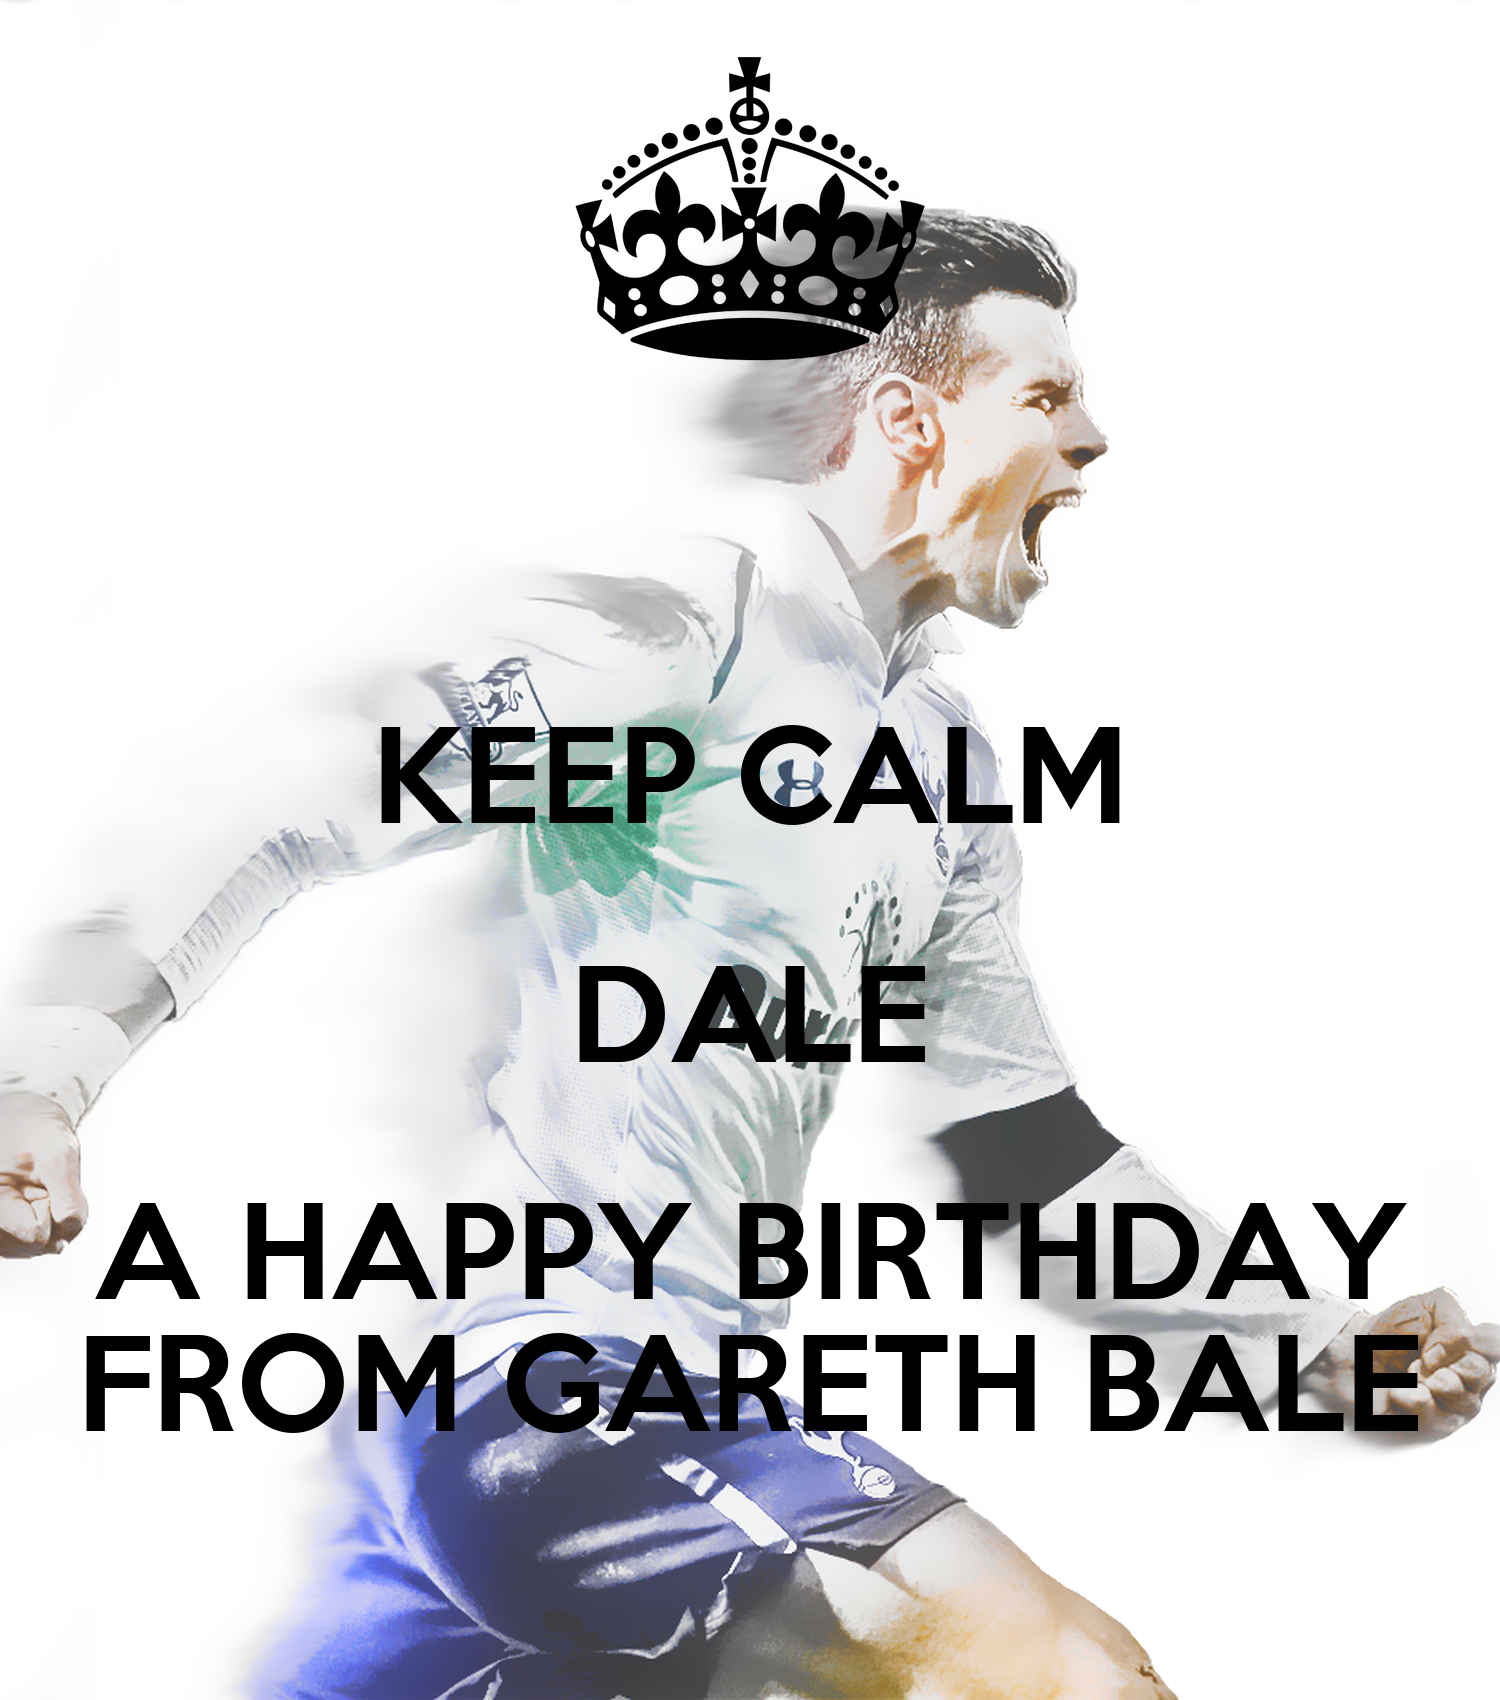 KEEP CALM DALE A HAPPY BIRTHDAY FROM GARETH BALE Poster